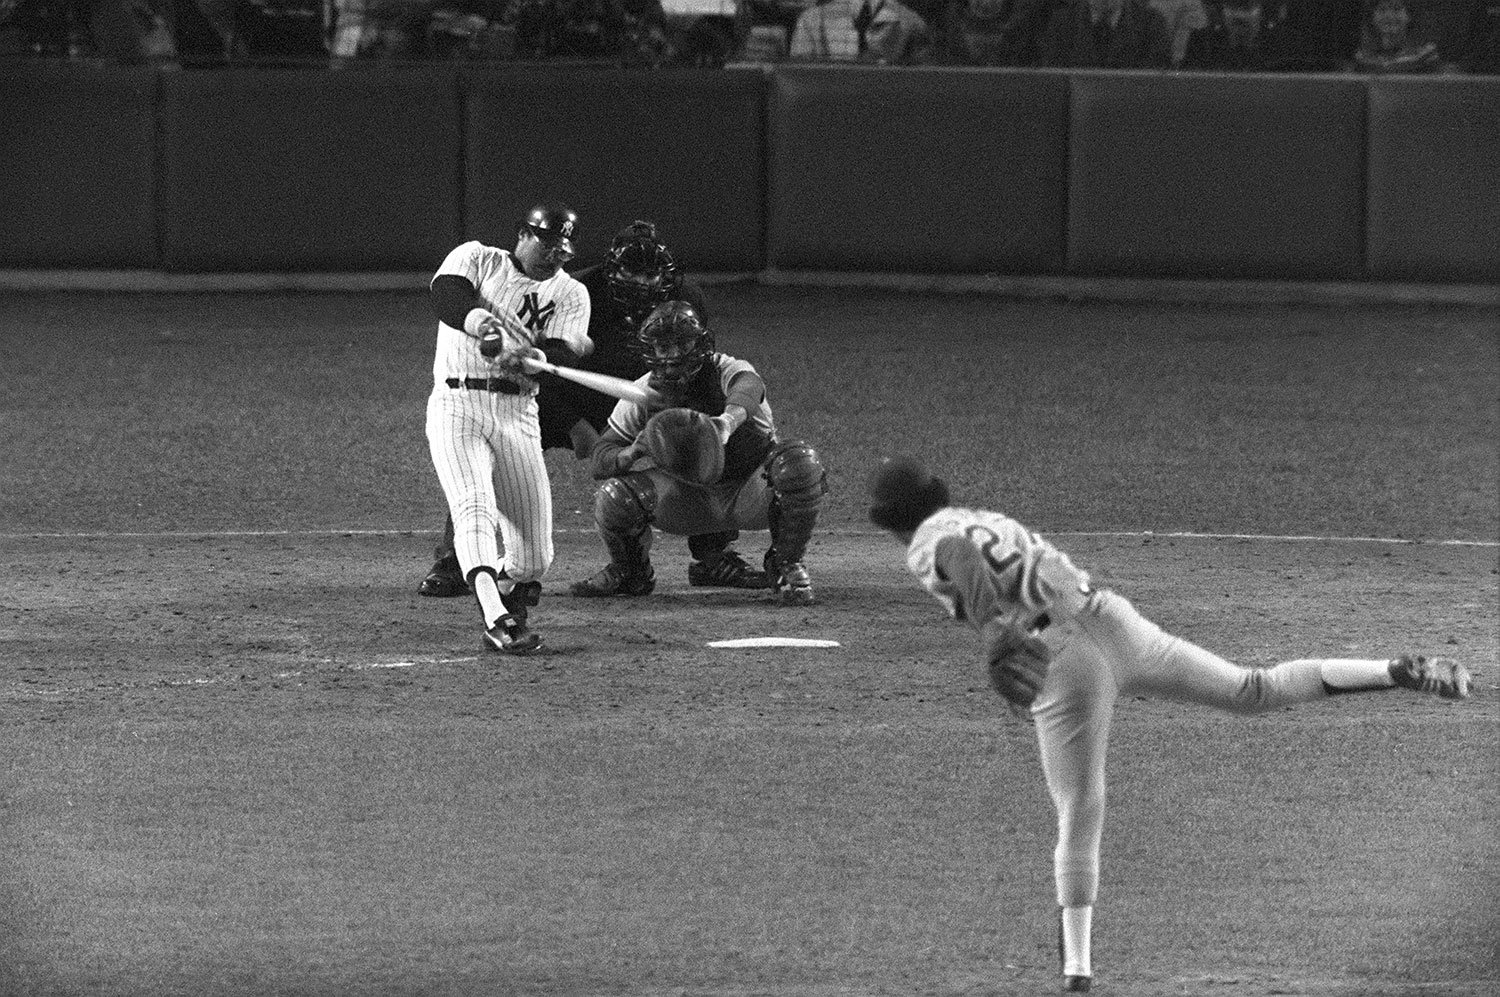 Oct. 18, 1977:                                    Reggie Jackson went 3 for 4 in Game 6 against the Los Angeles Dodgers,  hitting three home runs in three at-bats, and leading the Yankees to their first World Series in 15 years, earning himself the name Mr. October for his clutch efforts.